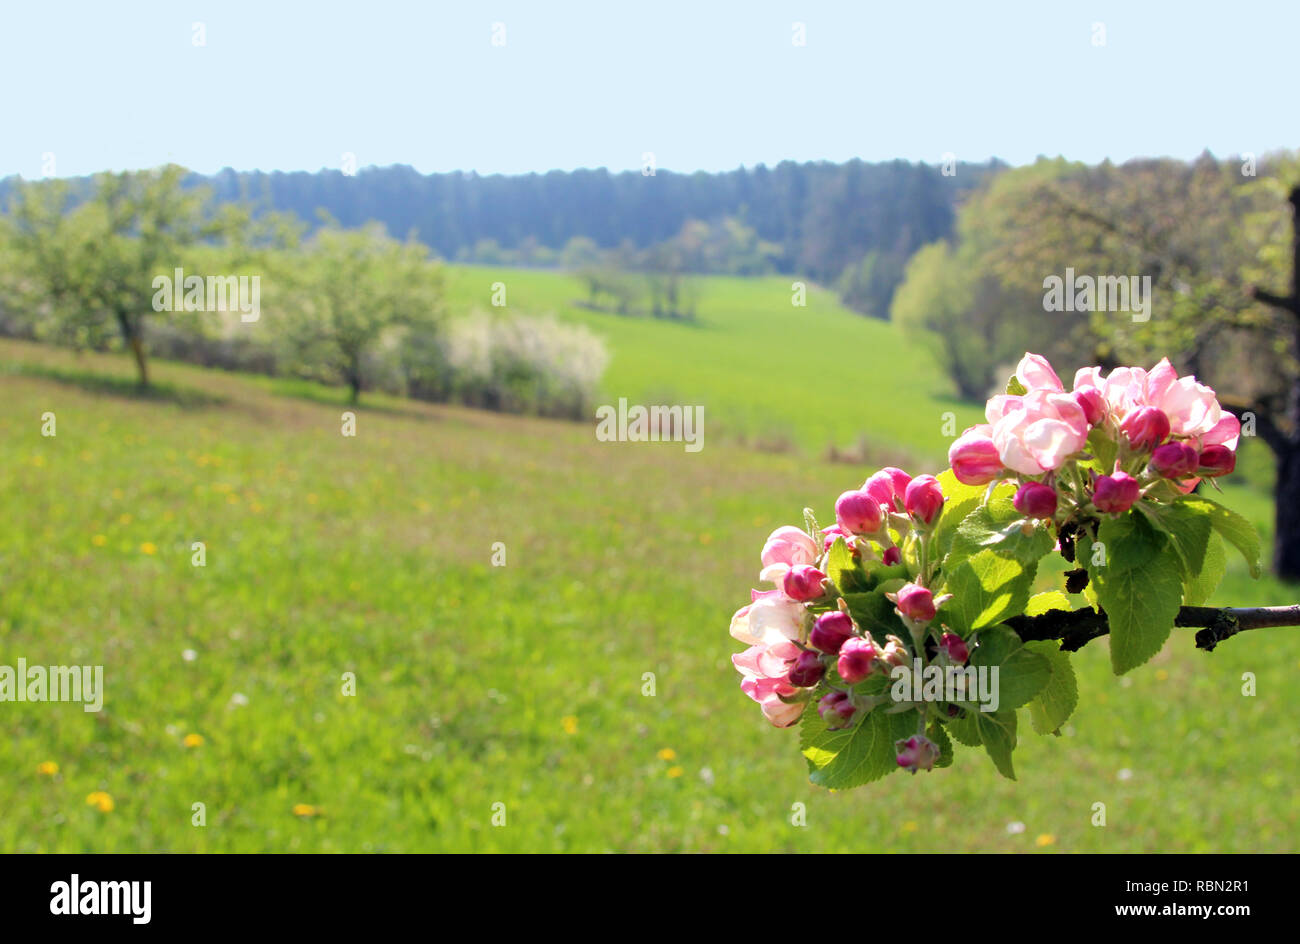 springtime landscape with trees , meadows and a branch with apple blossoms, forest in the background - Stock Image